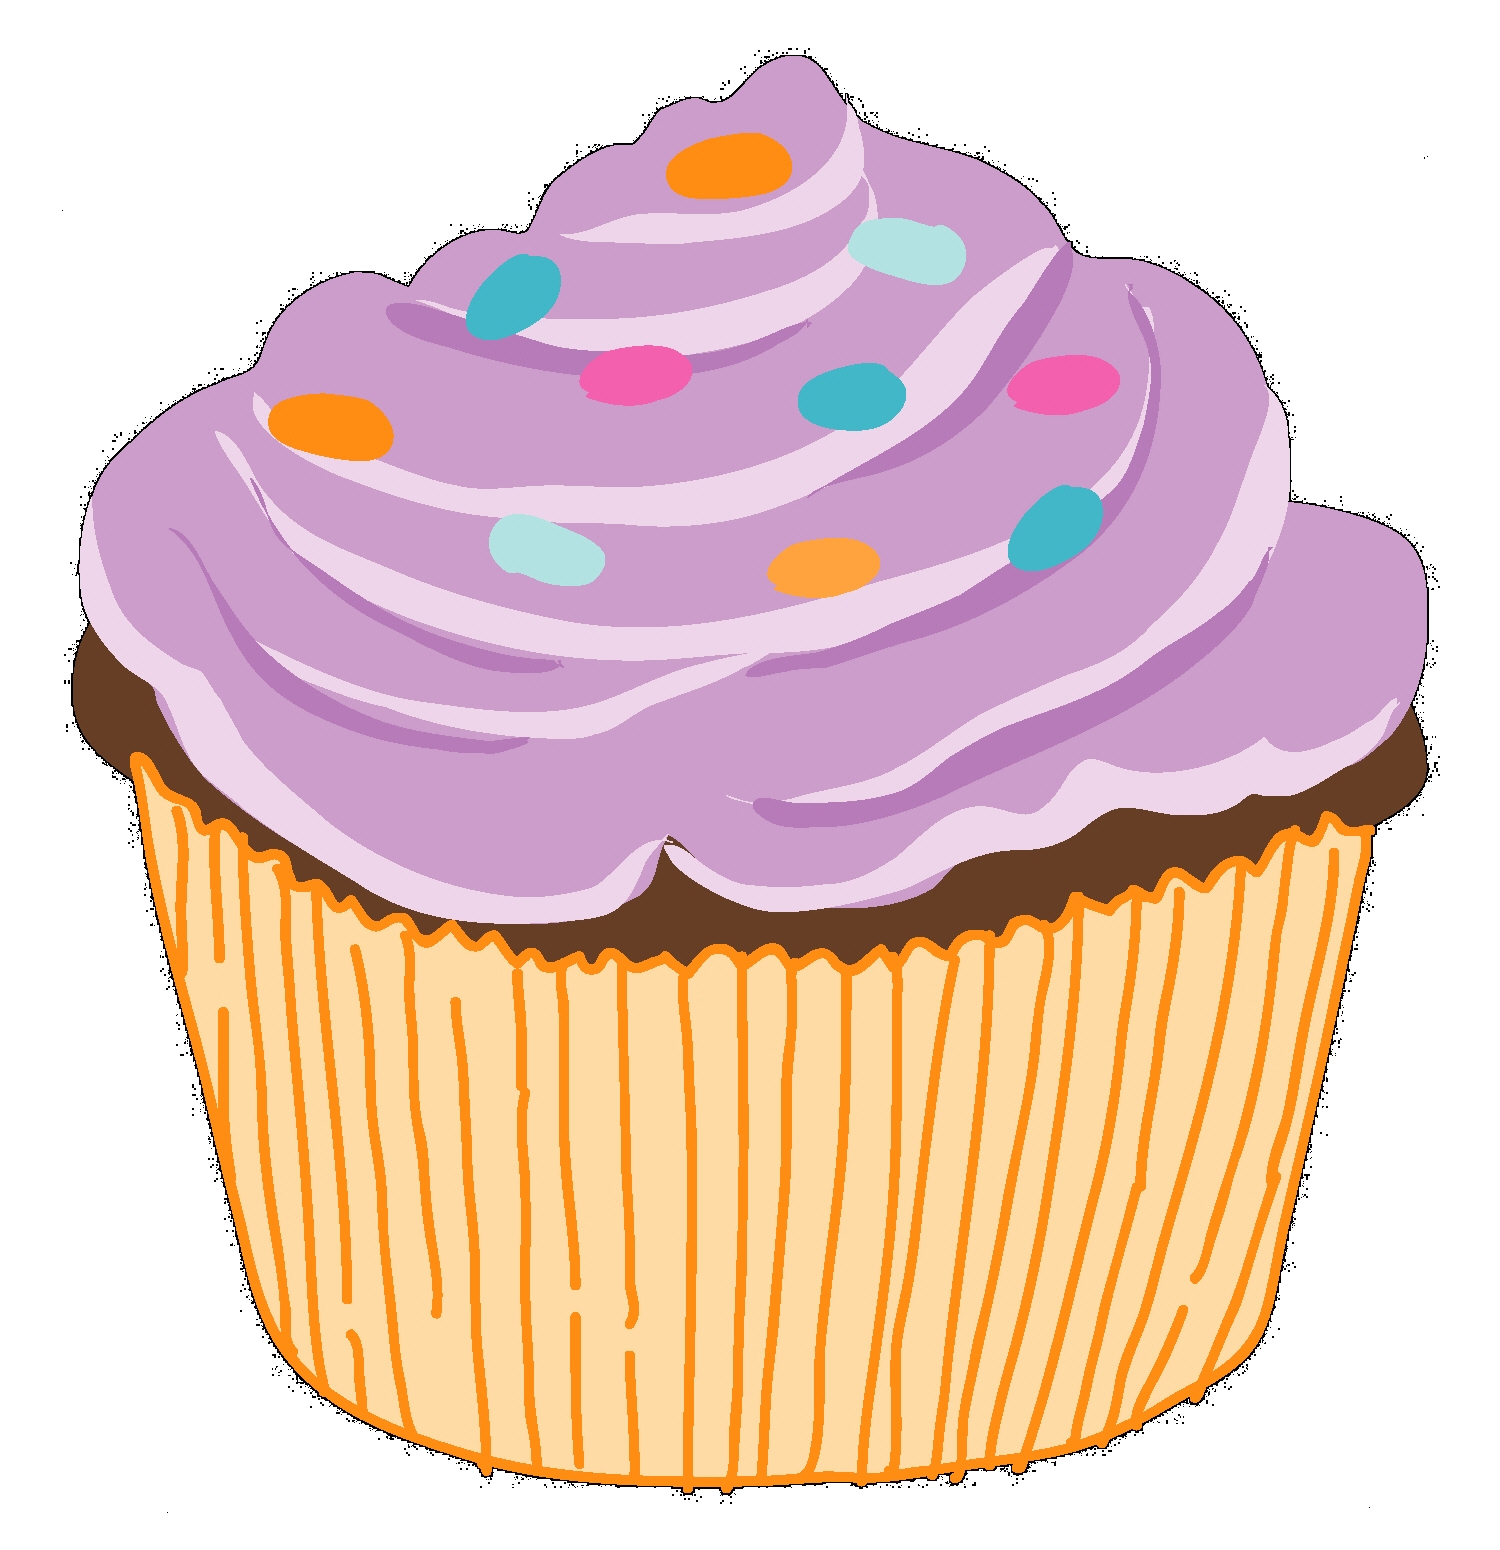 Cupcake clipart free download free clipart images 2 - Cliparting.com clipart download